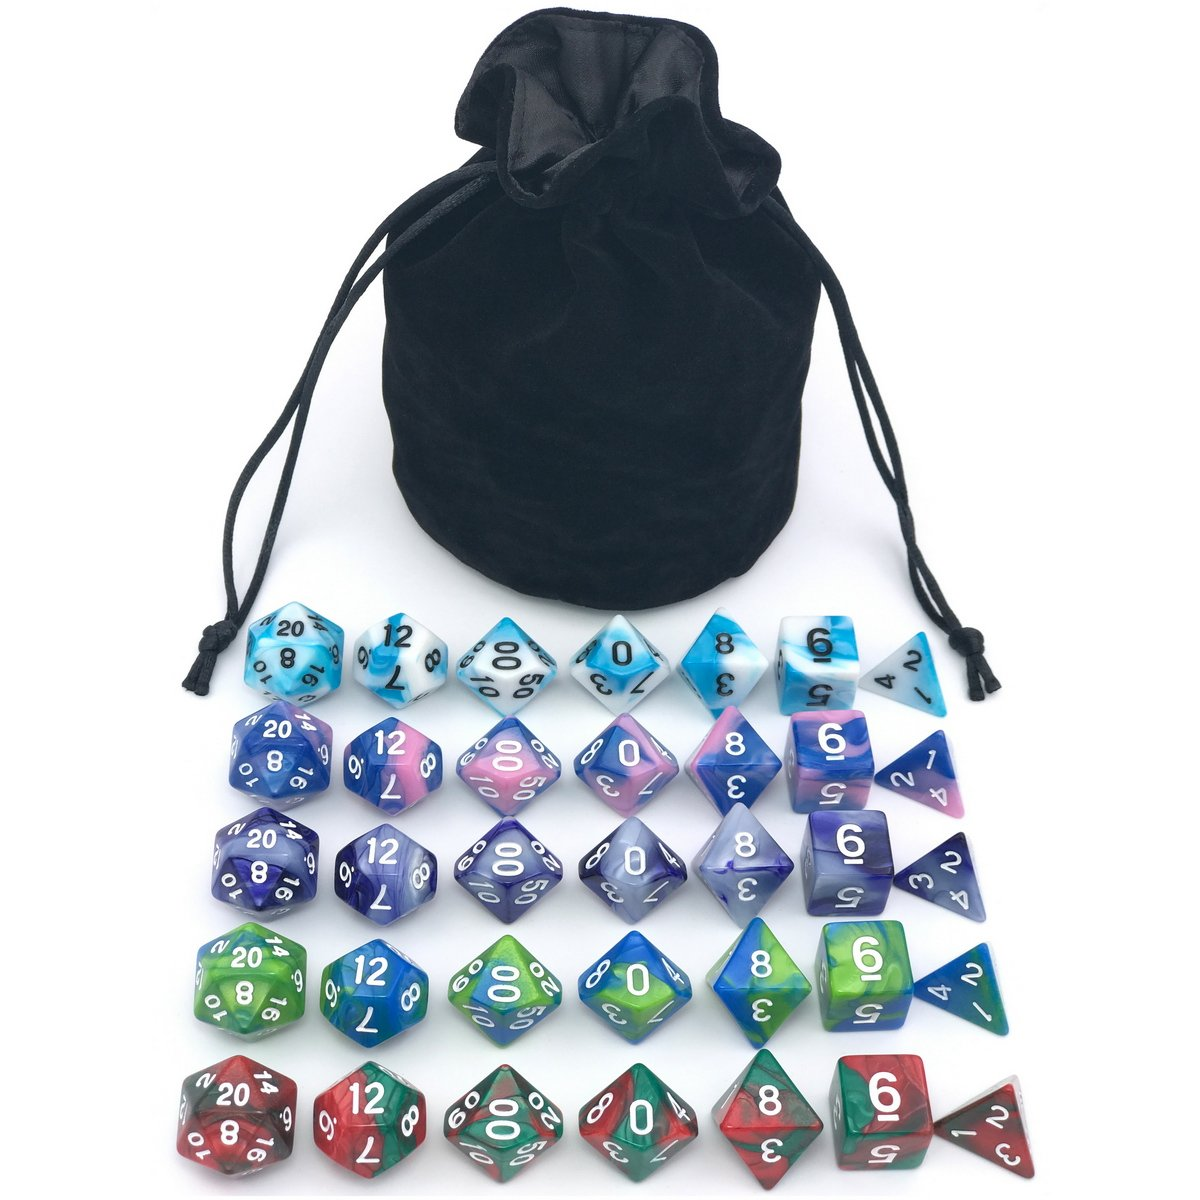 Dice Set for Dungeons&Dragons, DND, RPG Games, Polyhedral Dice Set, Assorted Dice Set, 35 Total, 5 Sets with Drawstring dice Pouch by IvyFieldDice